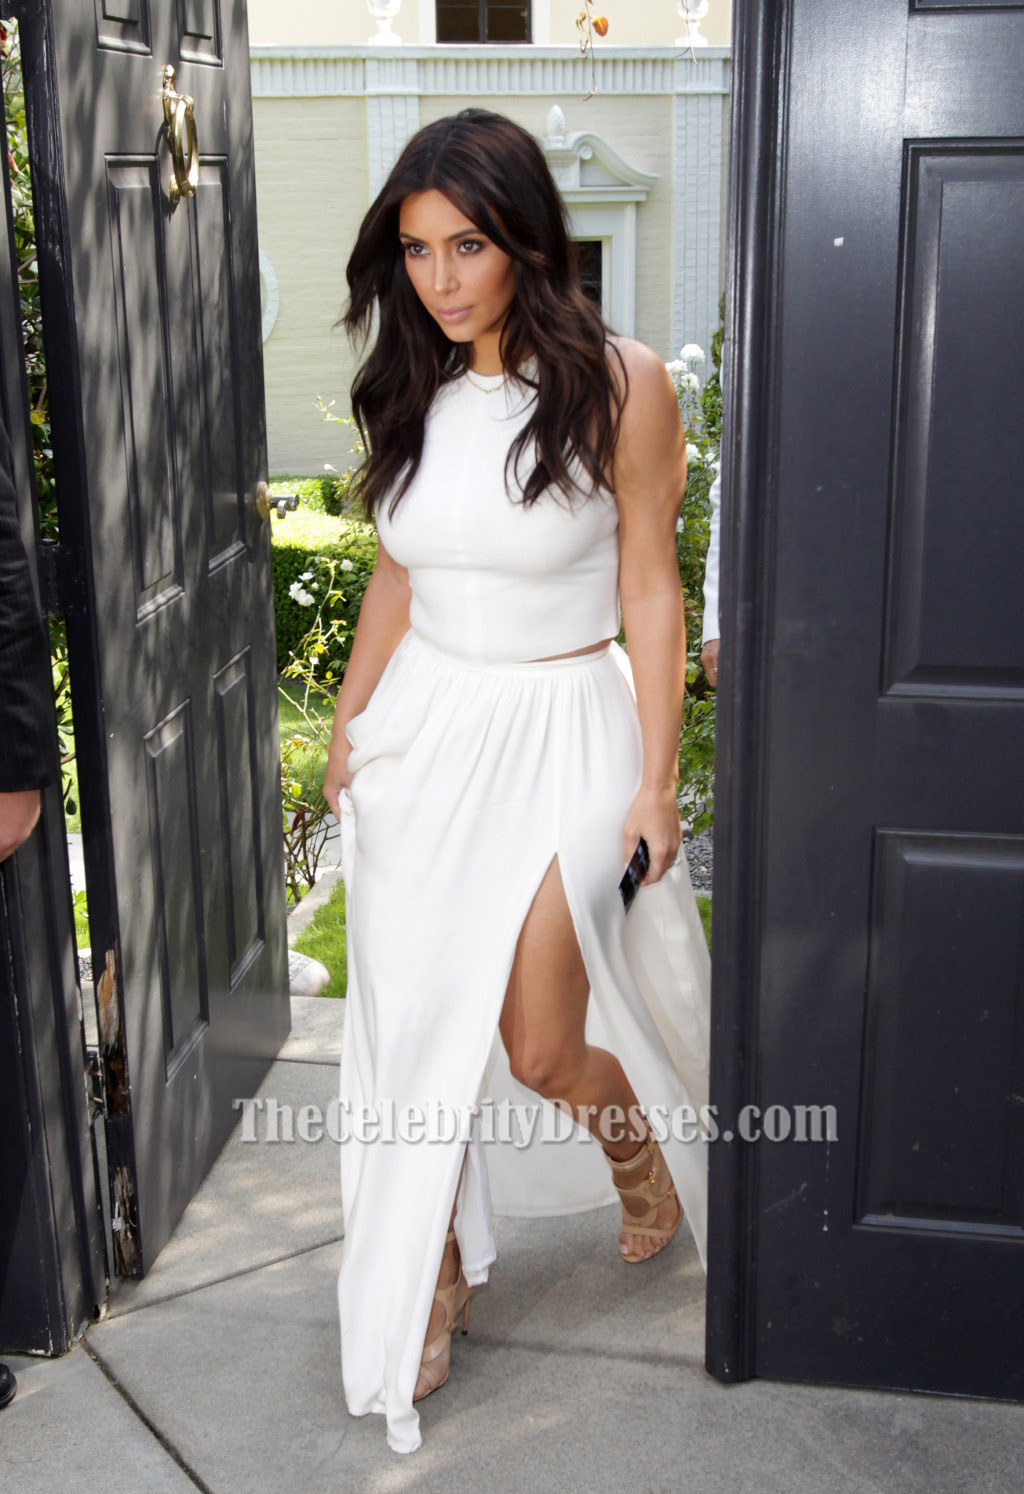 Beautiful Kim Kardashian U0027Ciarau0027s Baby Shower Outiftu0027 White Two Pieces Dress    TheCelebrityDresses